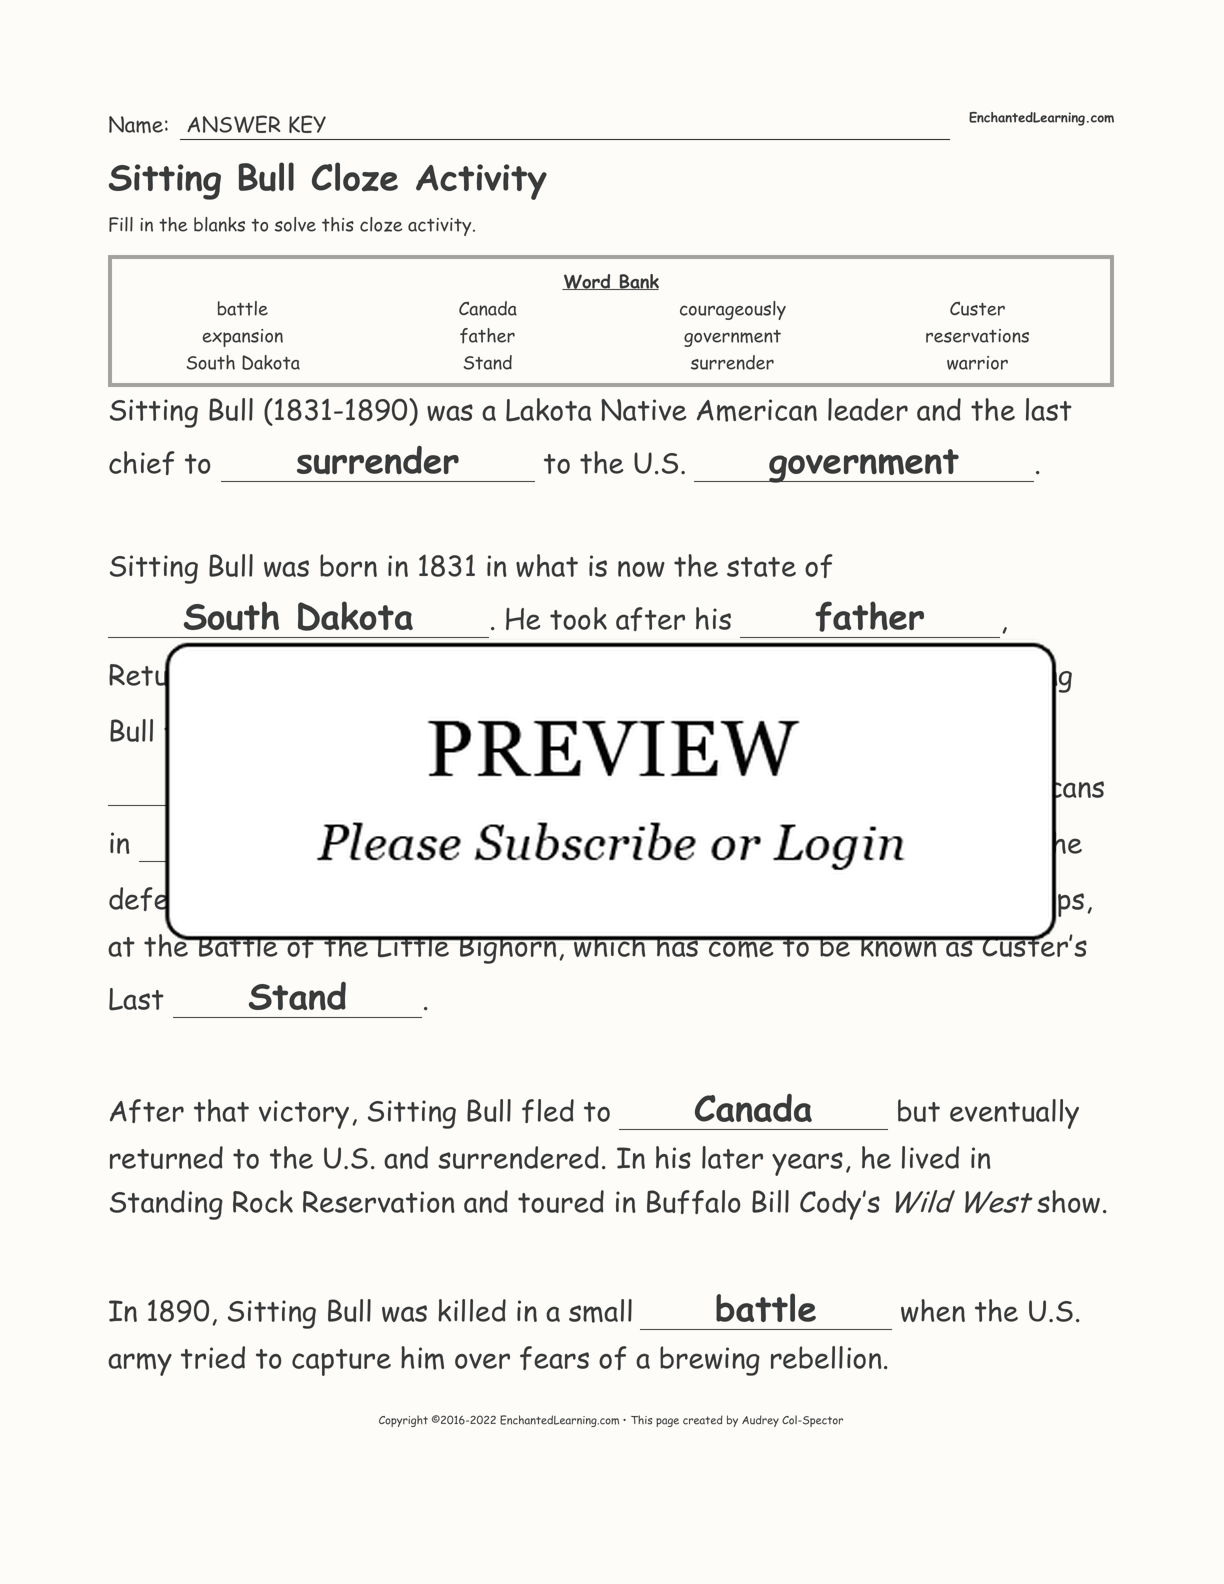 Sitting Bull Cloze Activity interactive worksheet page 2